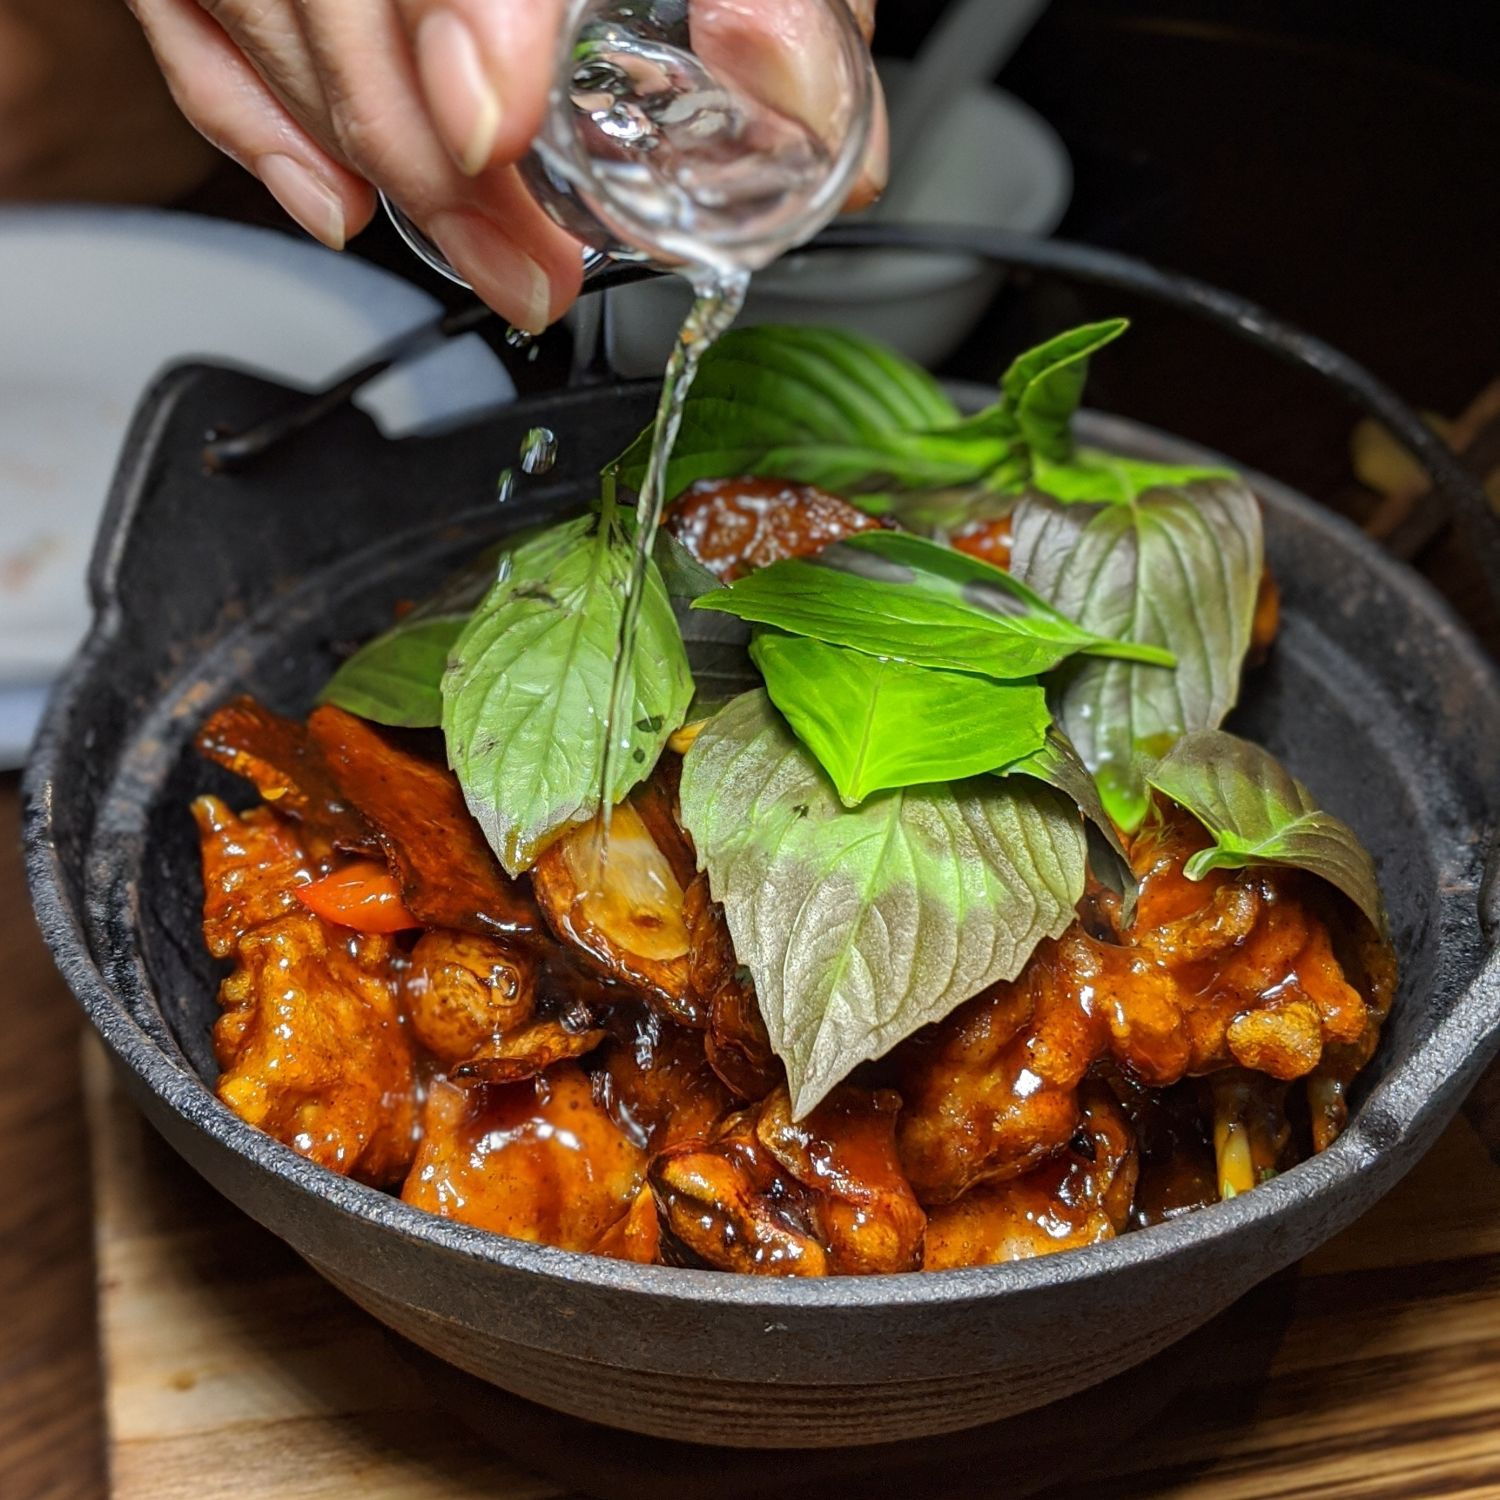 mott 32 singapore Crispy Free-Range Chicken, Moutai